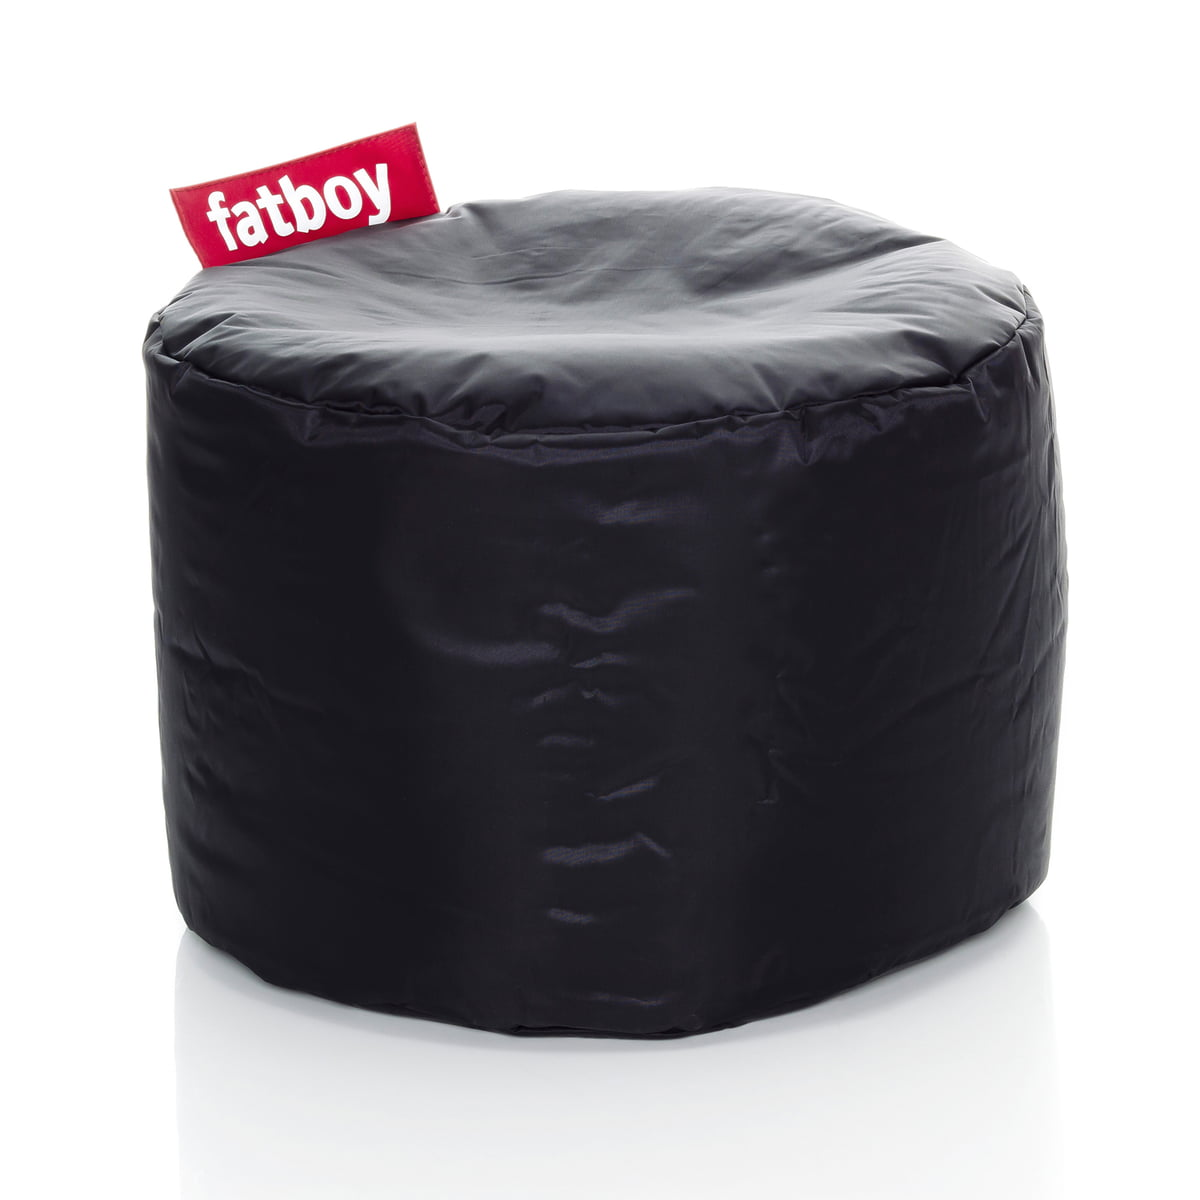 Fatboy Zitzak Limited Edition.Fatboy Point Zwart